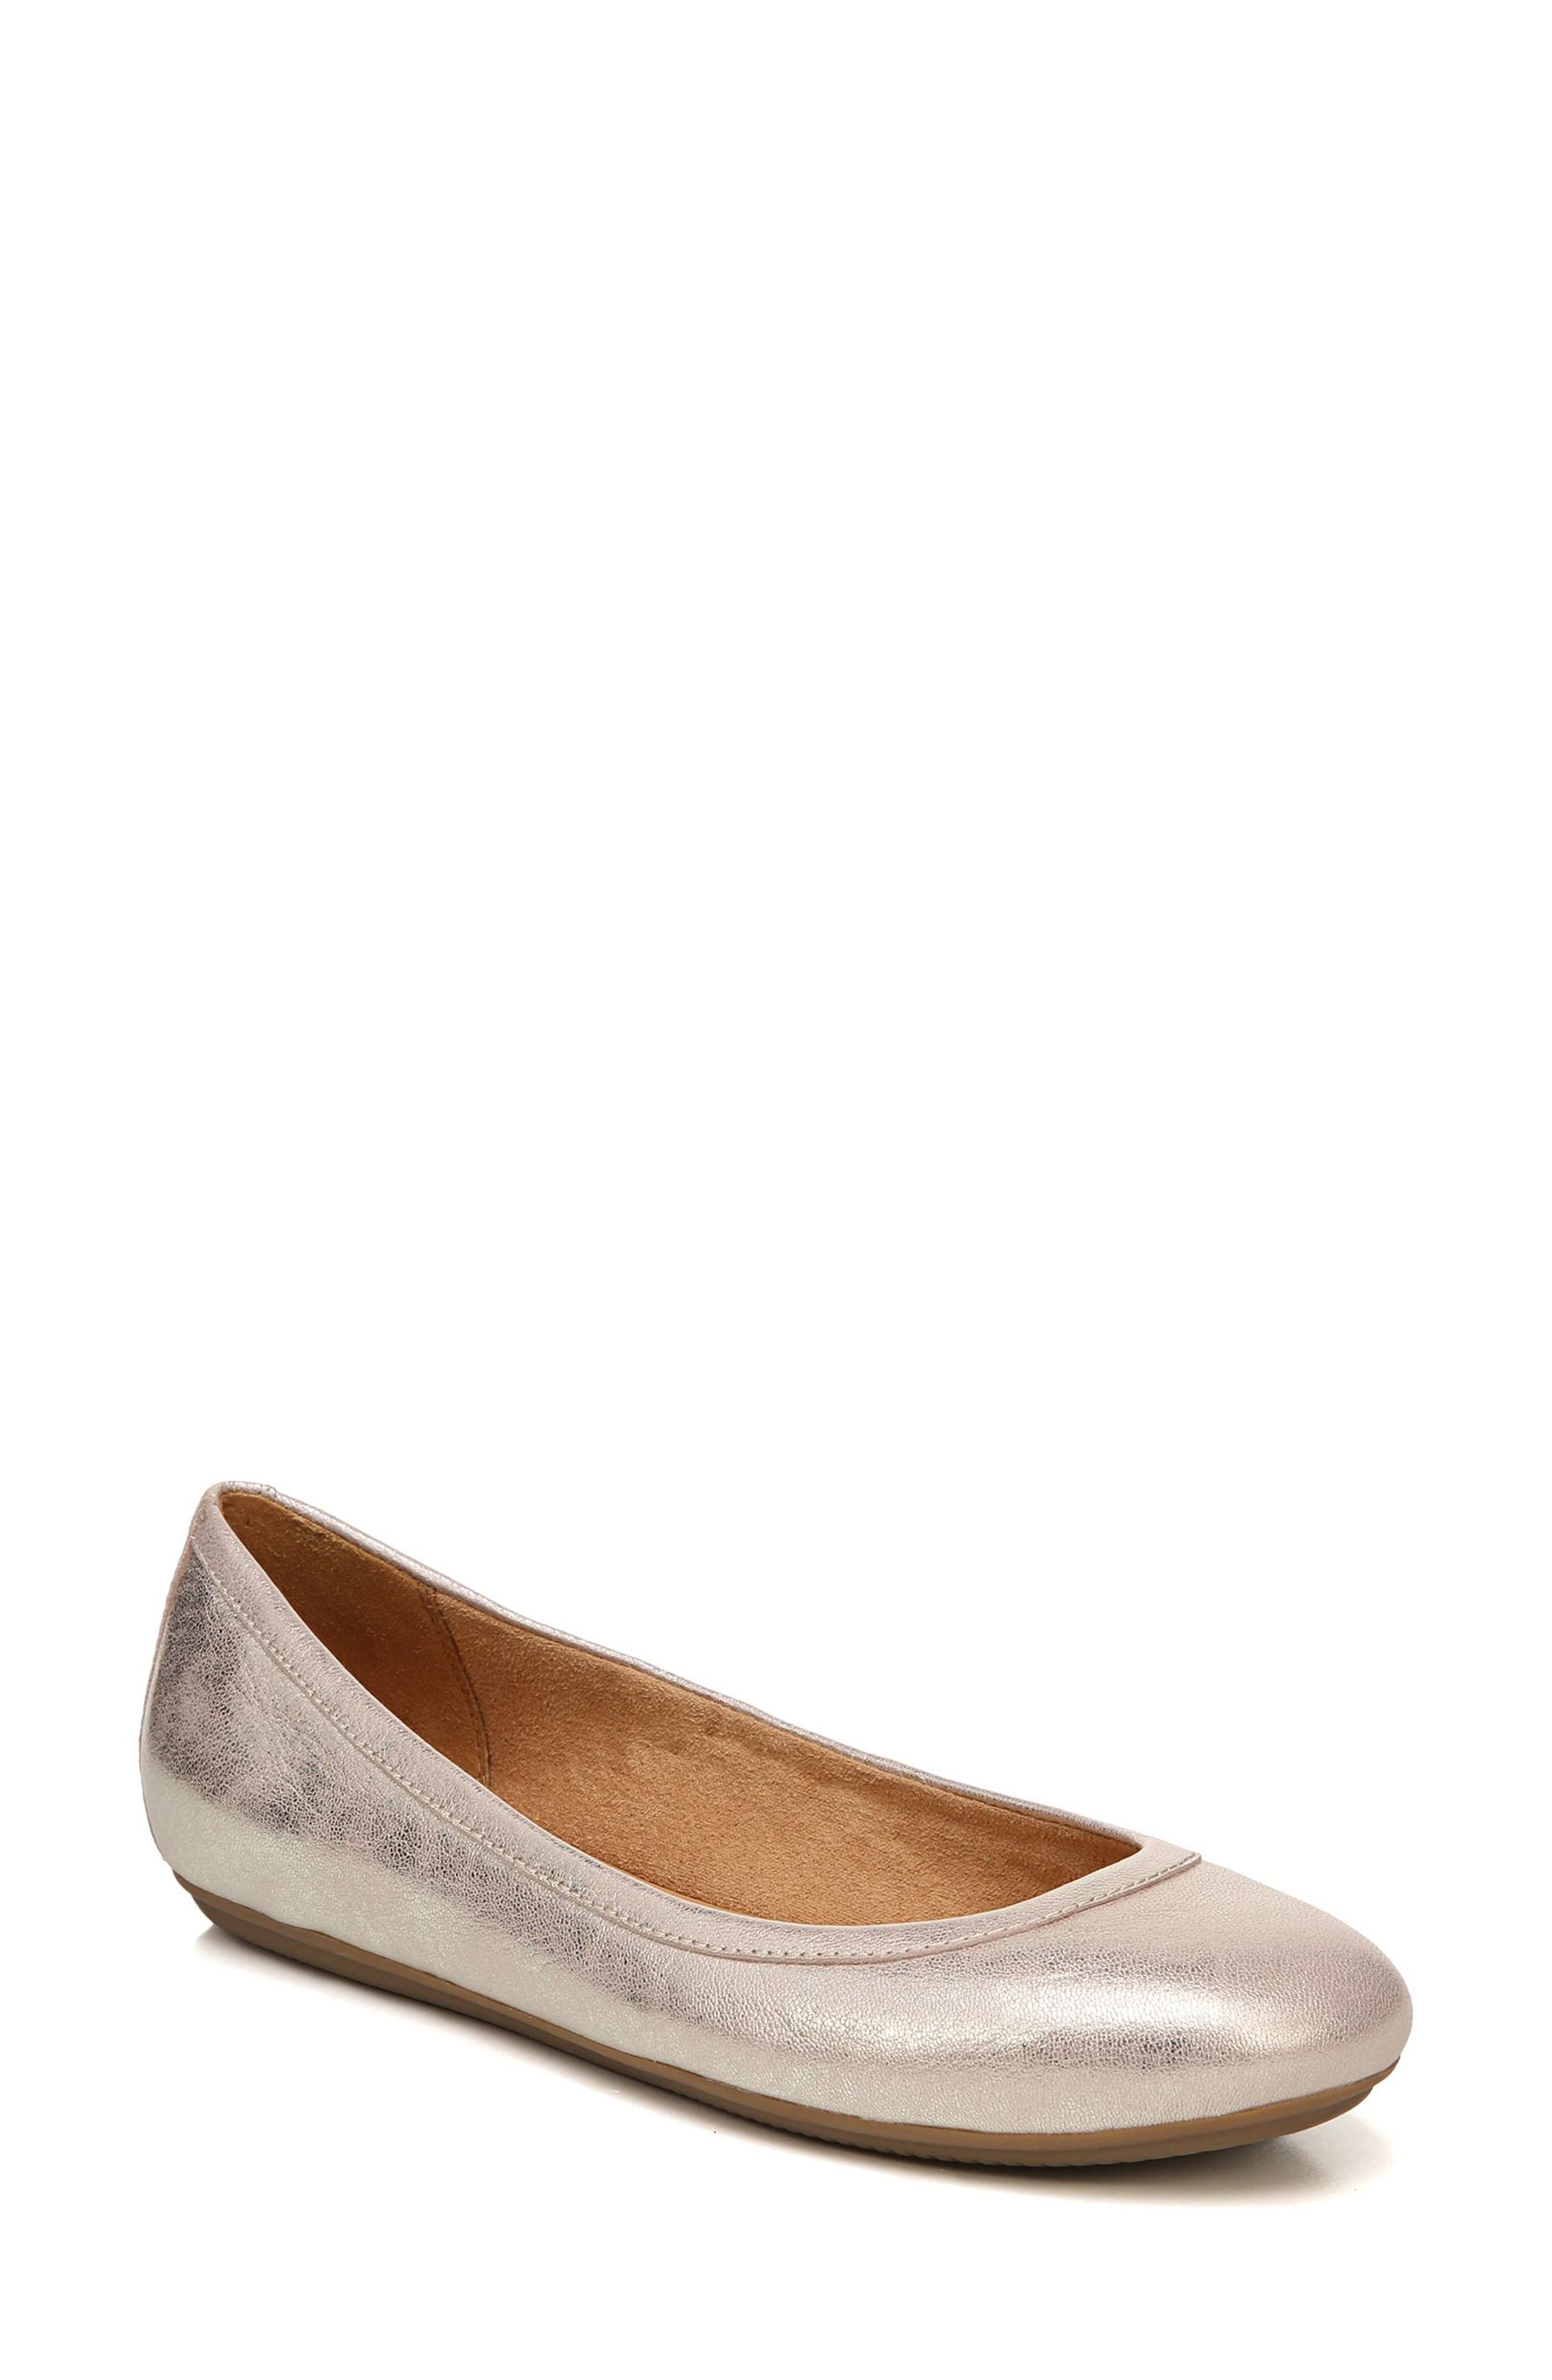 Brittany Ballet Flat,                         Main,                         color,